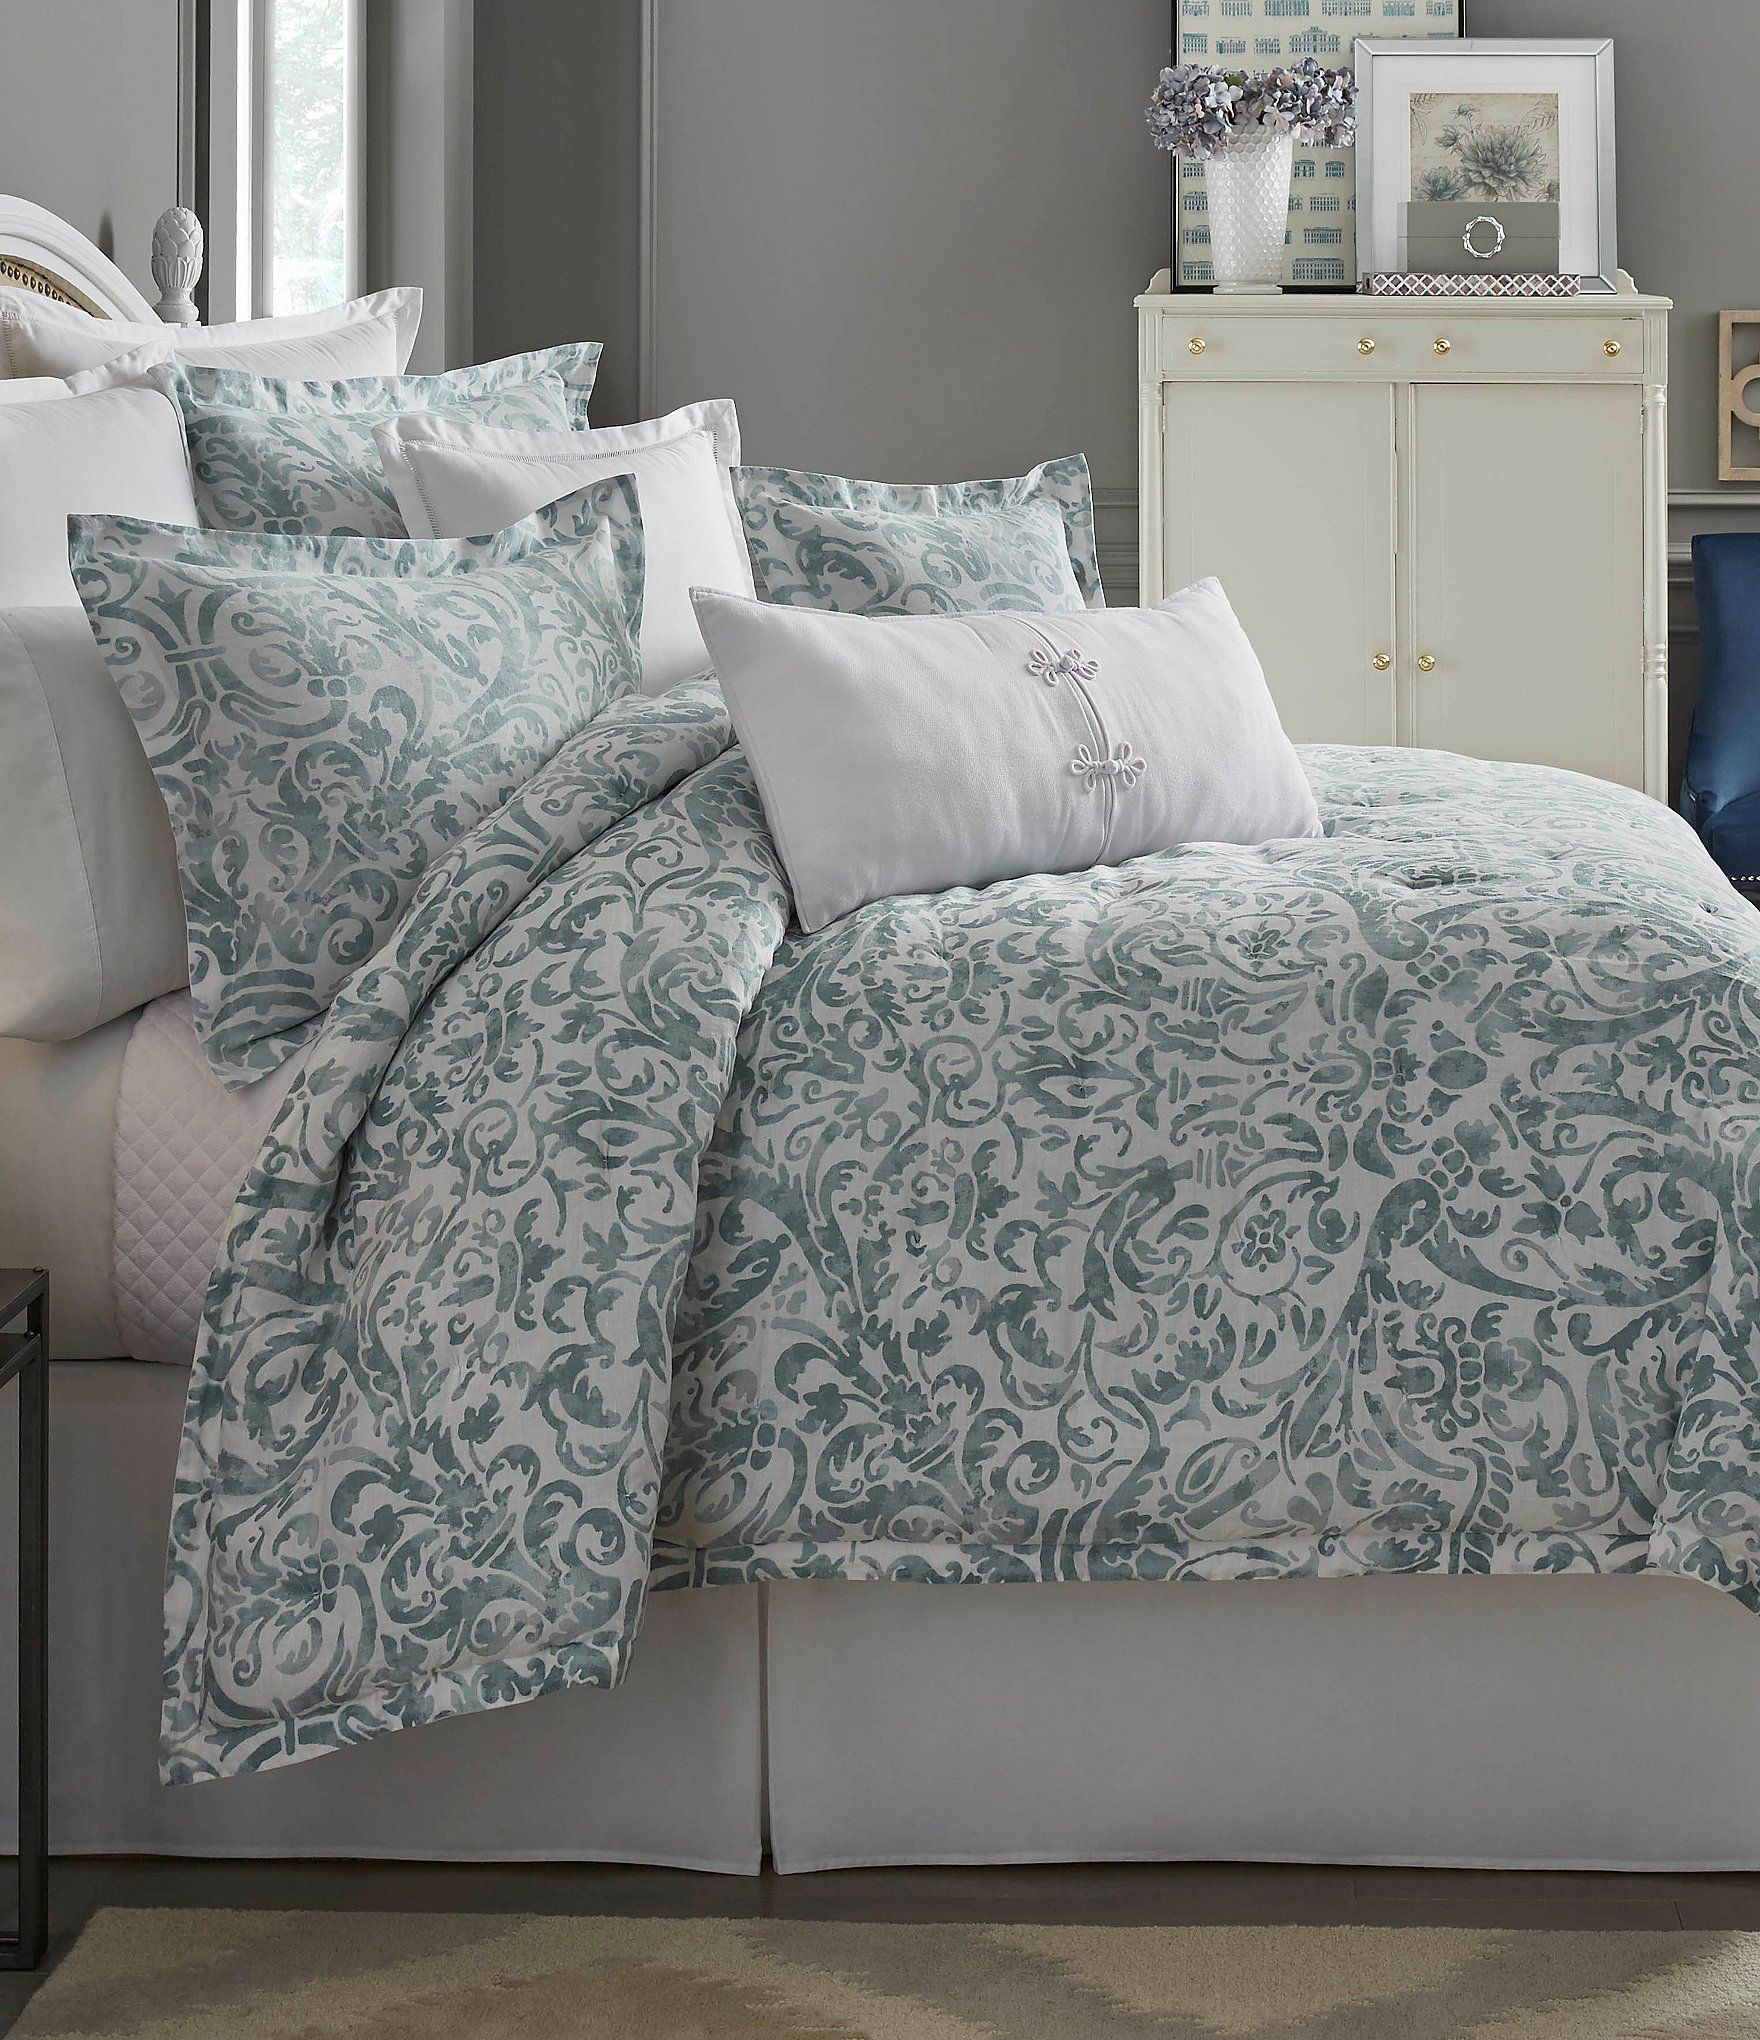 every her southern dillards has home bed living decor bedrooms in woman things stylish house essentials idea bedroom bedding